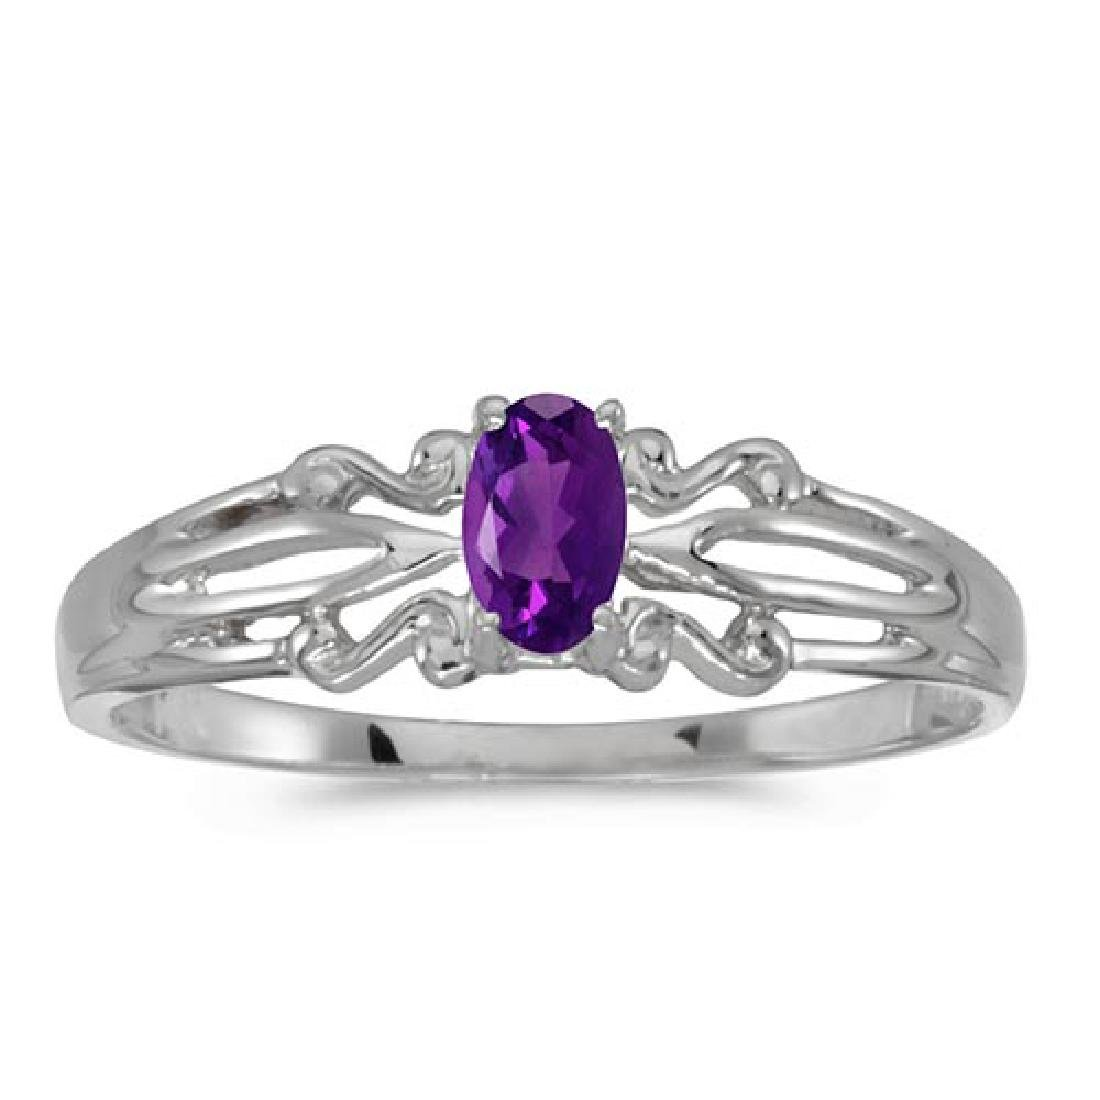 Certified 14k White Gold Oval Amethyst Ring 0.18 CTW